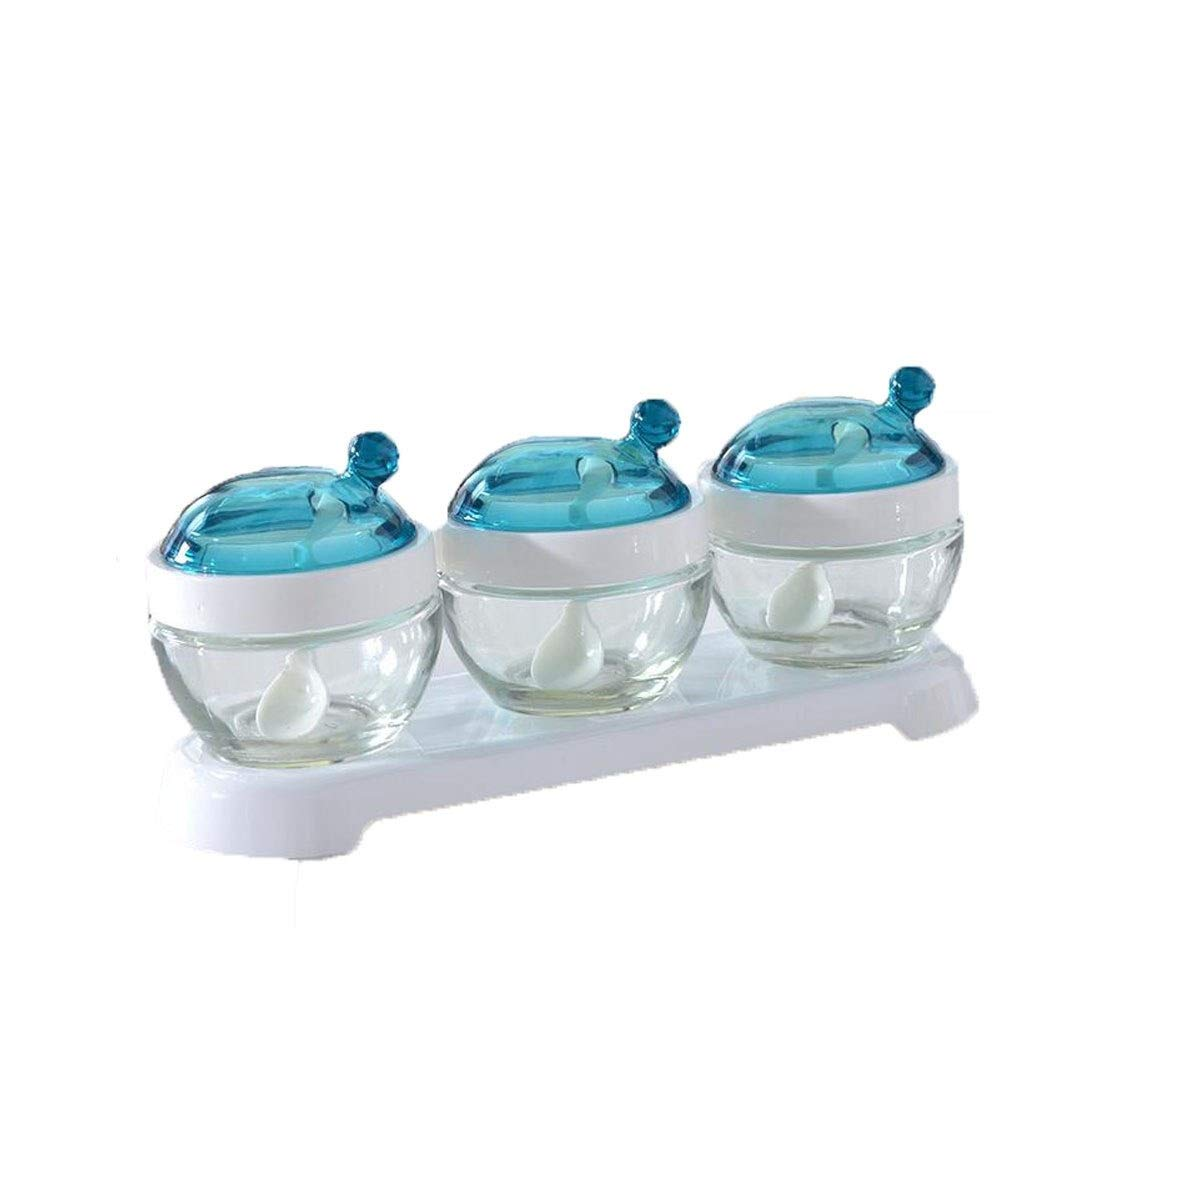 MINGRUIGONGMAO Condiment Dispenser, Glass Seasoning Jar Set, Can Be Loaded With Various Seasonings. Kitchen Support Plush toys (Color : Blue) by MINGRUIGONGMAO